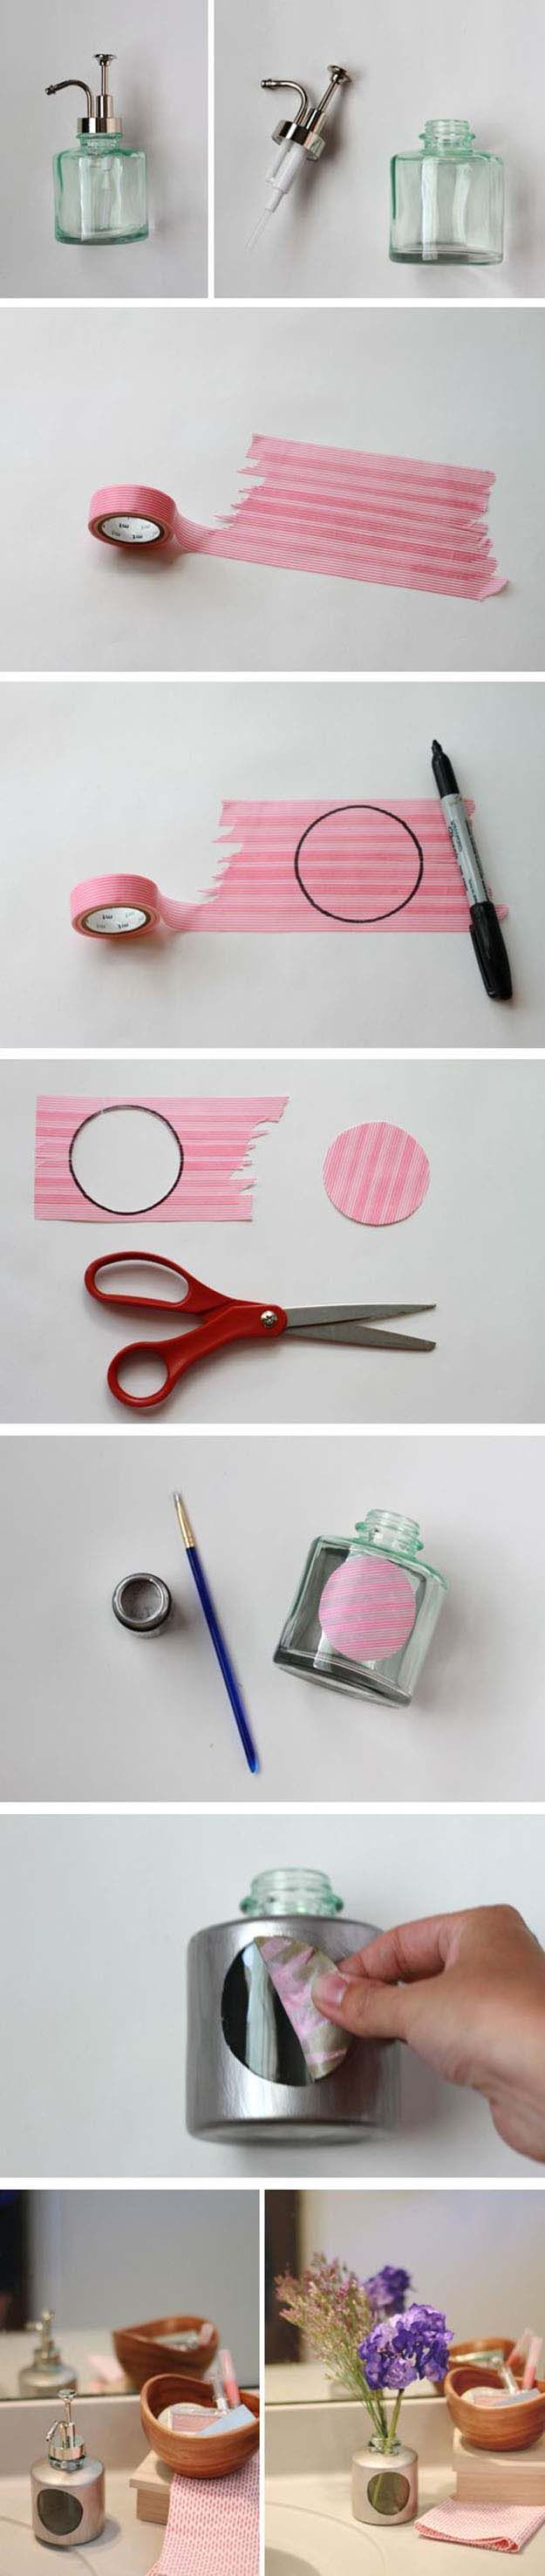 DIY Craft Ideas for the Home | Home Decor on a Budget |  DIY Soap Dispenser Ideas | DIY Projects and Crafts by DIY JOY at http://diyjoy.stfi.re/craft-ideas-diy-soap-dispensers